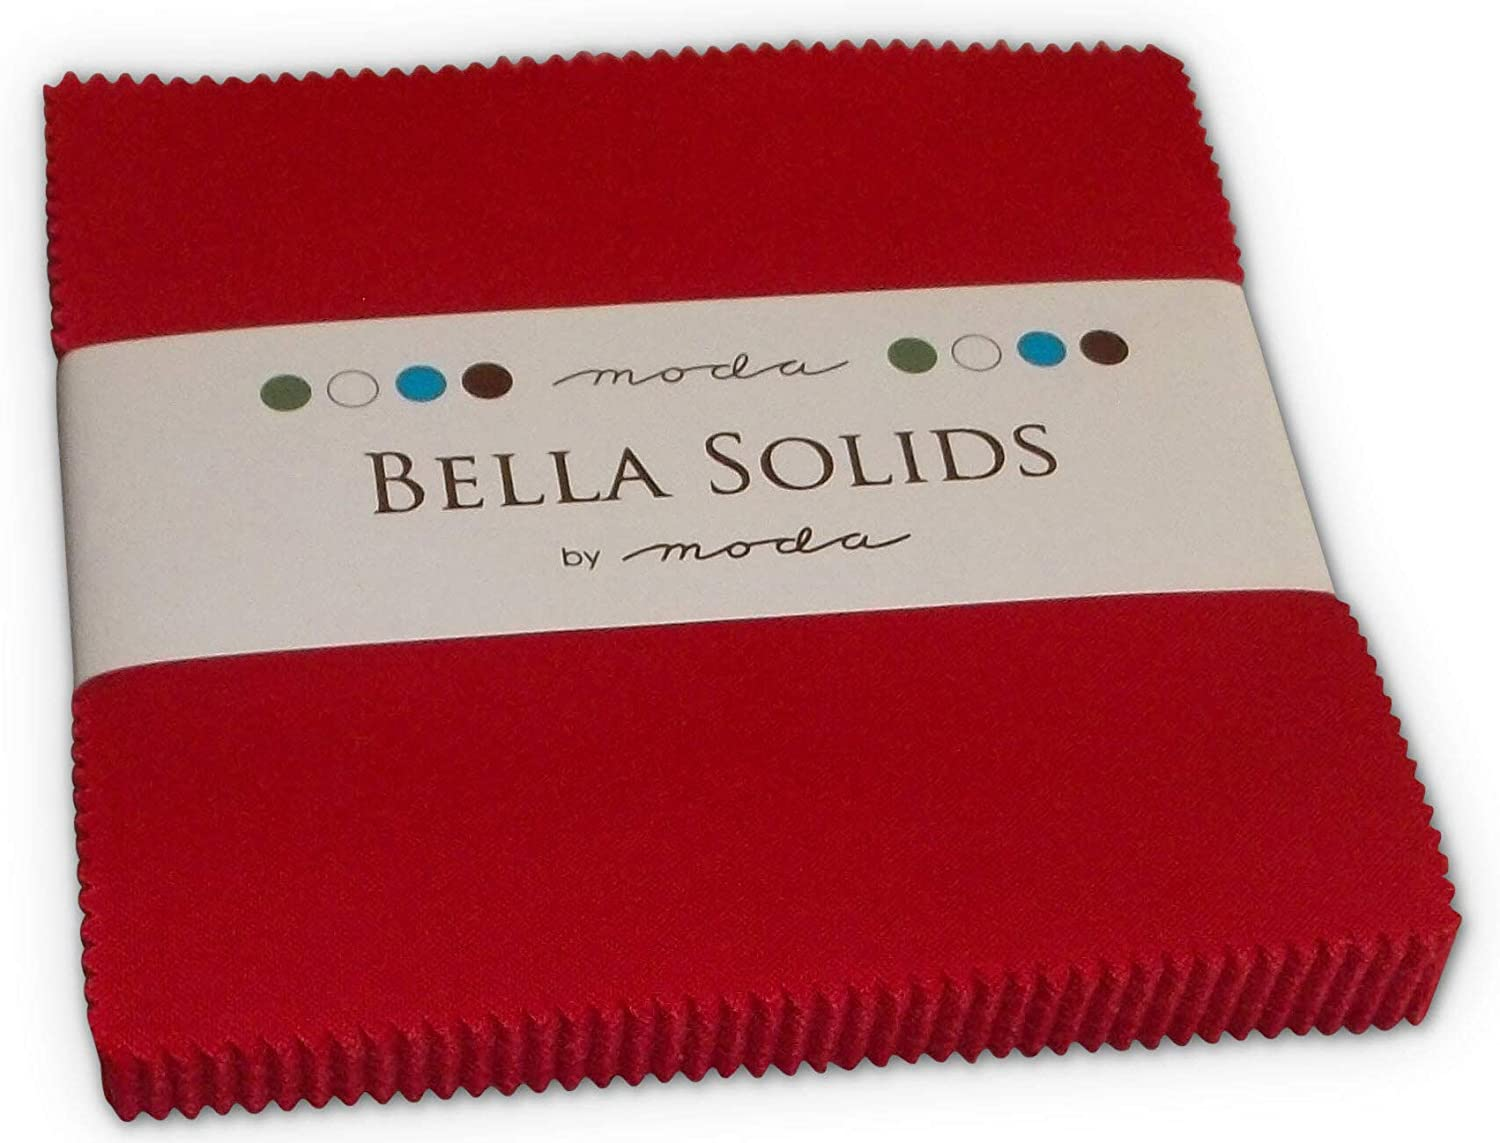 12.7cm Precut Cotton Fabric Squares Set of 42 5-inch Moda Basics Bella Solids 30s Colors Charm Pack